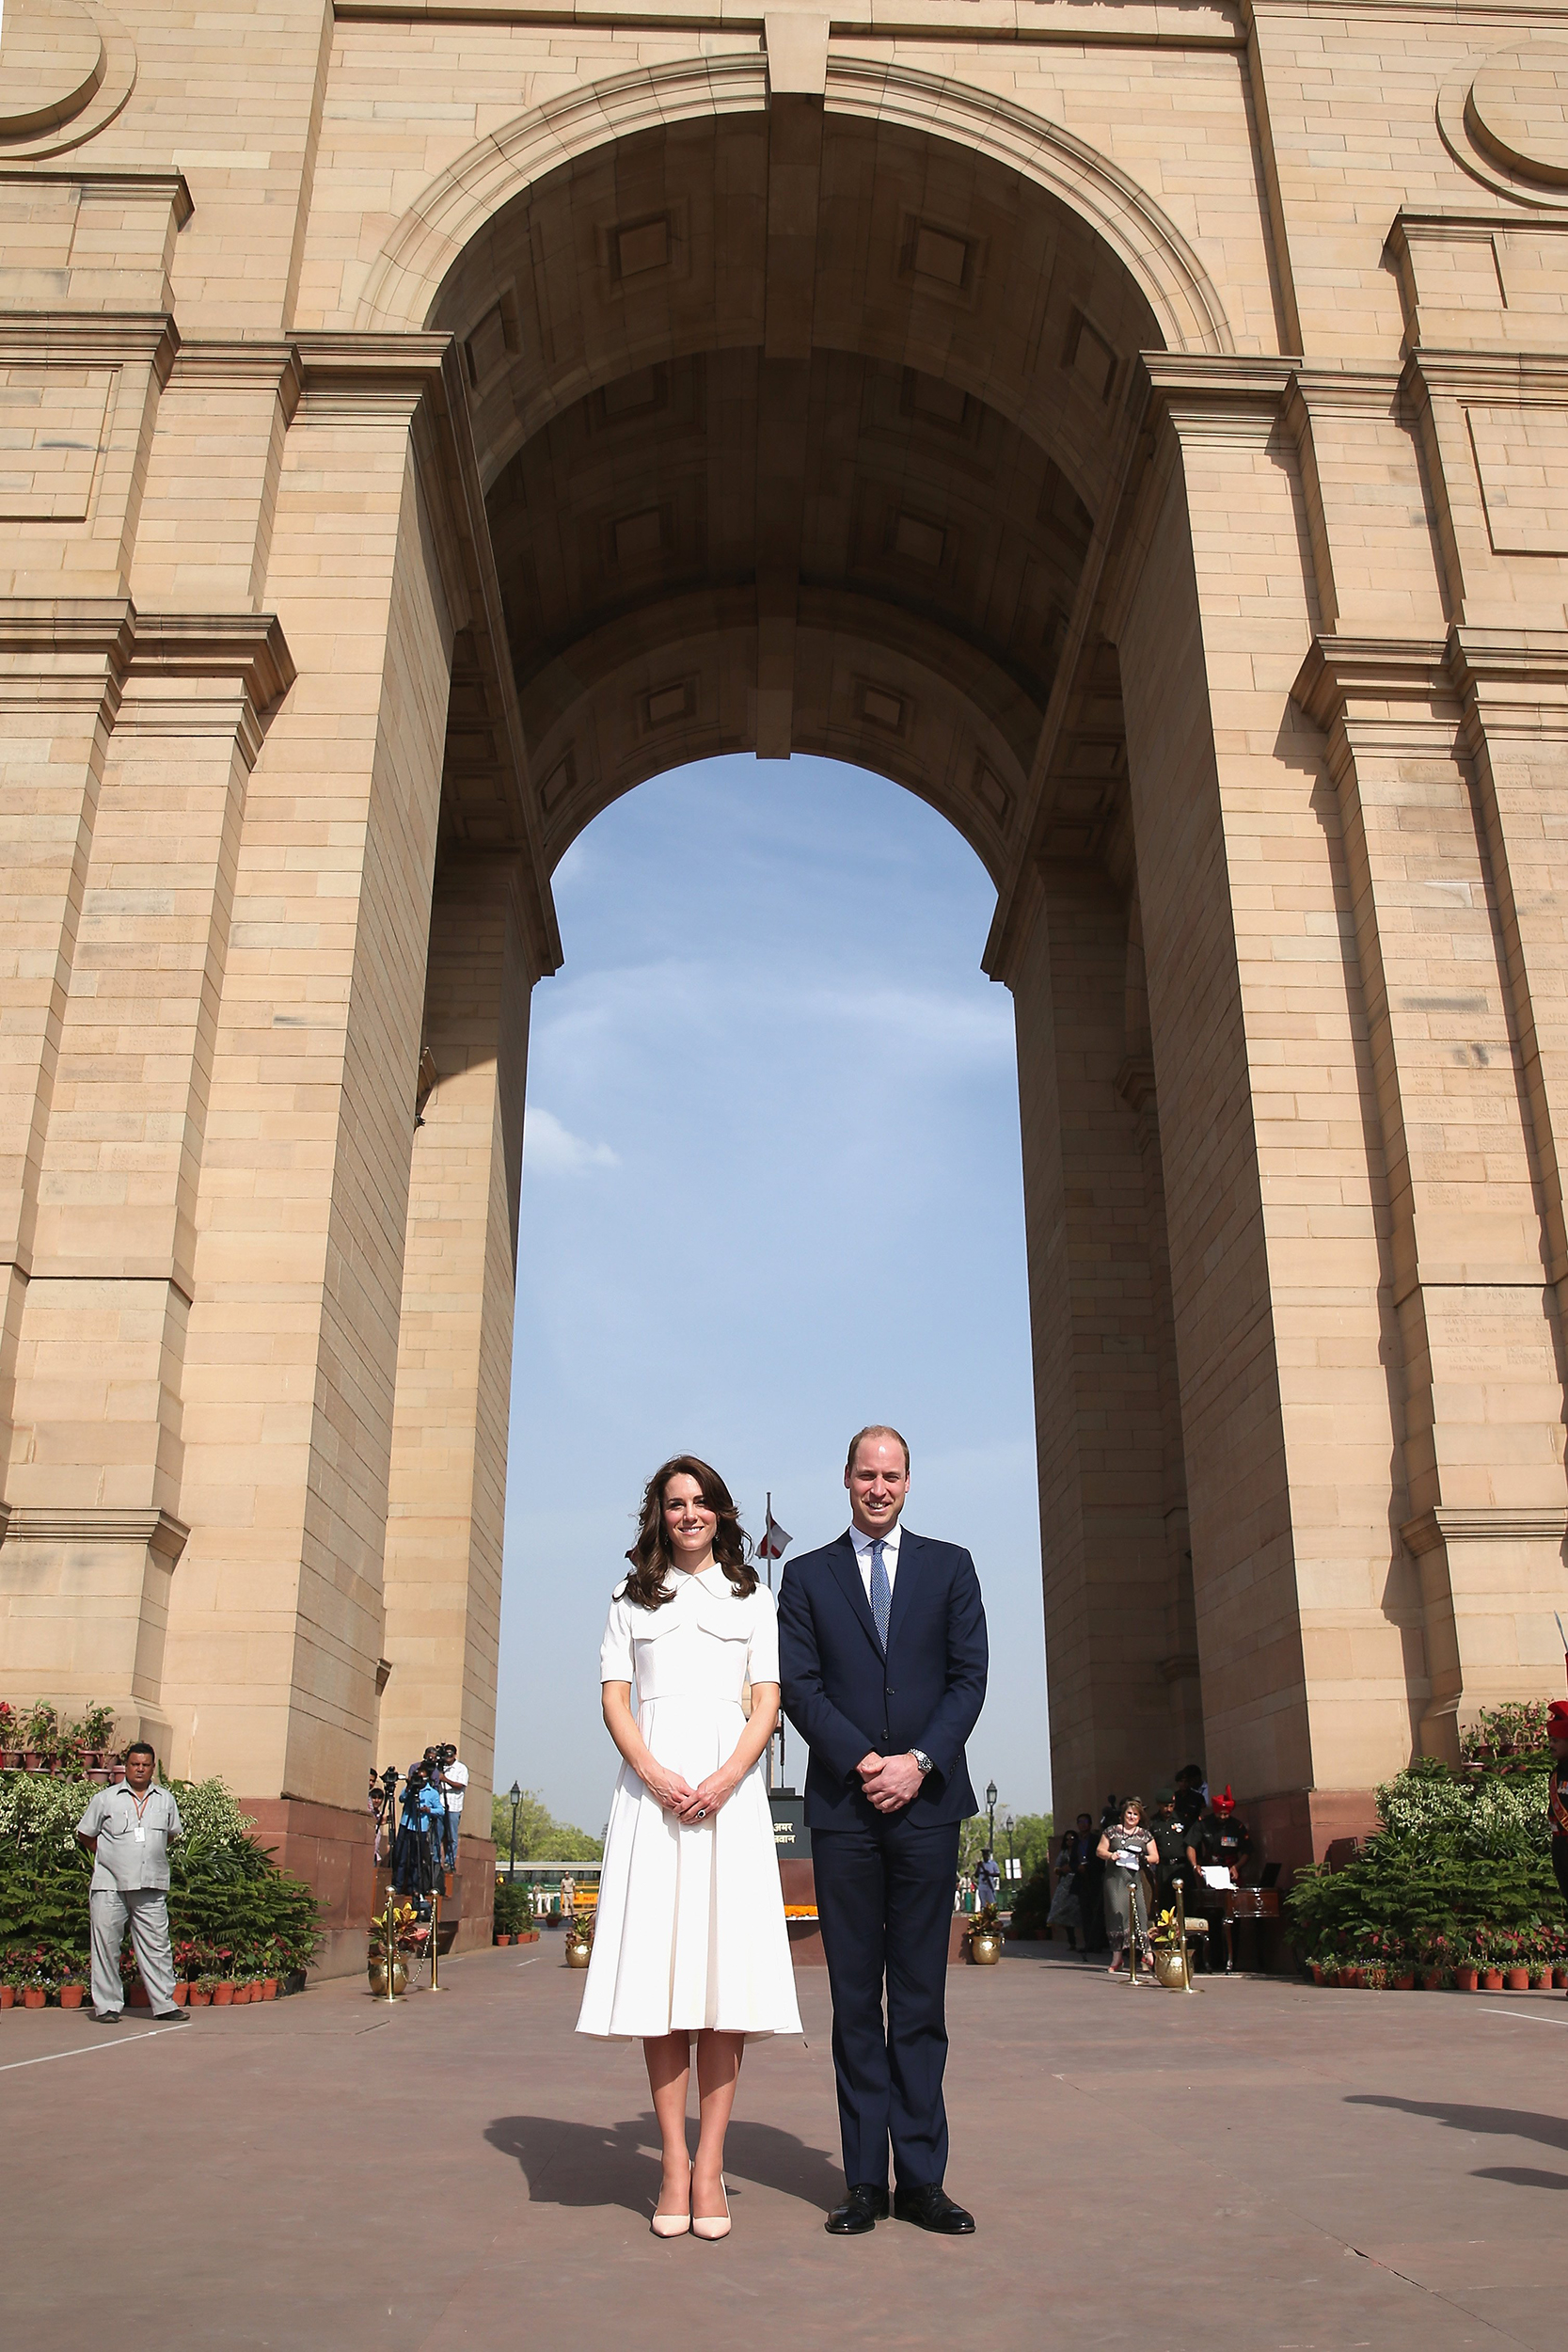 Catherine, Duchess of Cambridge and Prince William, Duke of Cambridge lay a wreath to honor the soldiers from Indian regiments who served in World War I, at India Gate, during the royal visit to India and Bhutan on April 11, 2016.